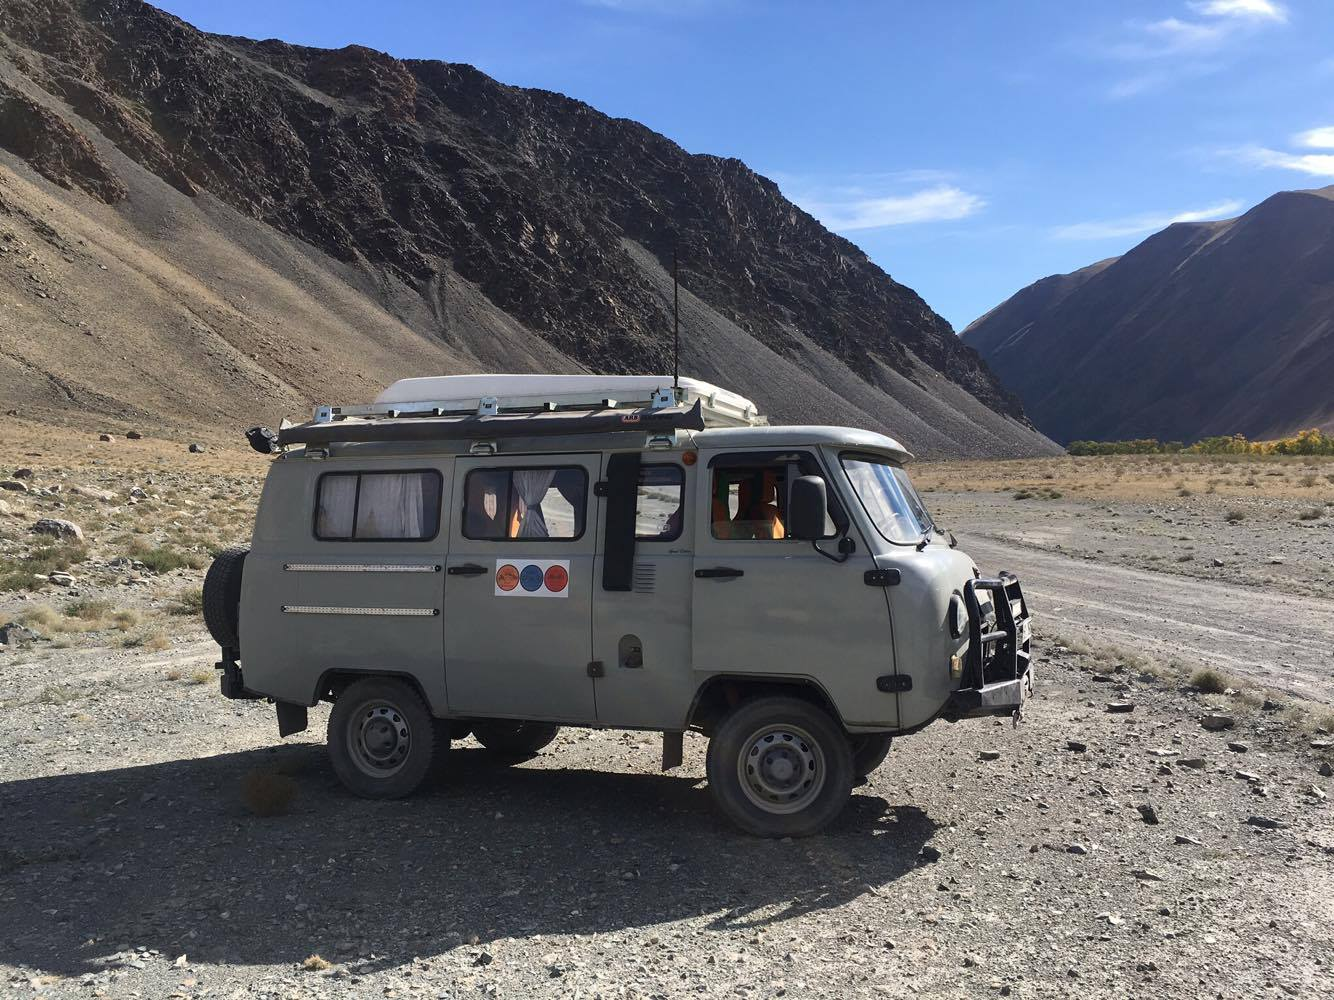 UAZ Russian Van 2014 and 2018 Petrol, Manual transmission, Great Off road vehicle for a group, 6-8 passenger will fit - All our vehicles are equipped with ARB bumper and winches.We will provide 2 extra tires along with Tool kit with necessary spare parts, Camping kit, Cooking gears, gas stove, water container, pots and pans, forks, knives and cutlery.Roof tents are available and can be installed.